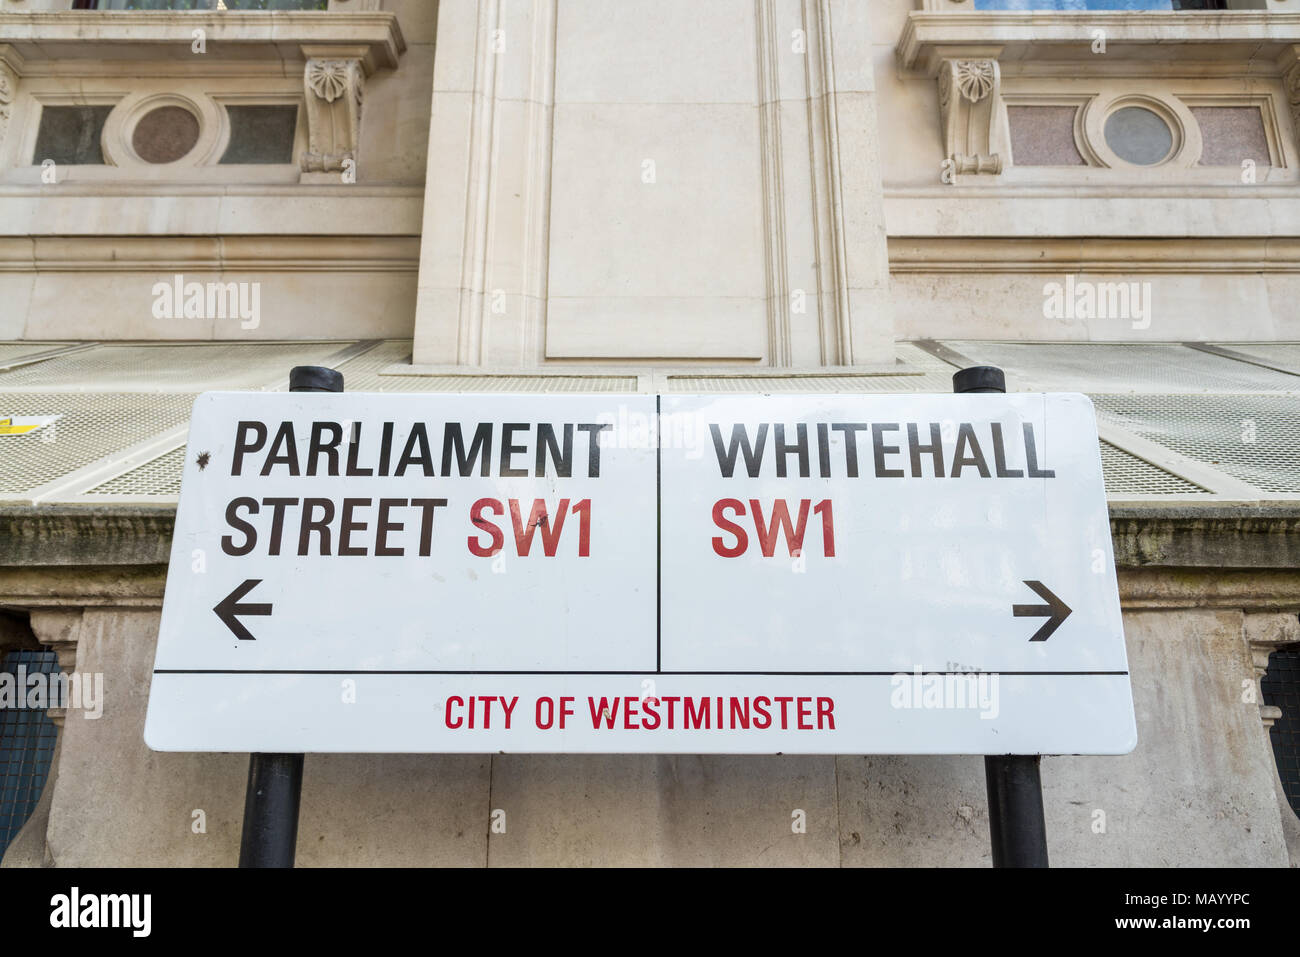 Parliament Street and Whitehall street signs, London, UK - Stock Image